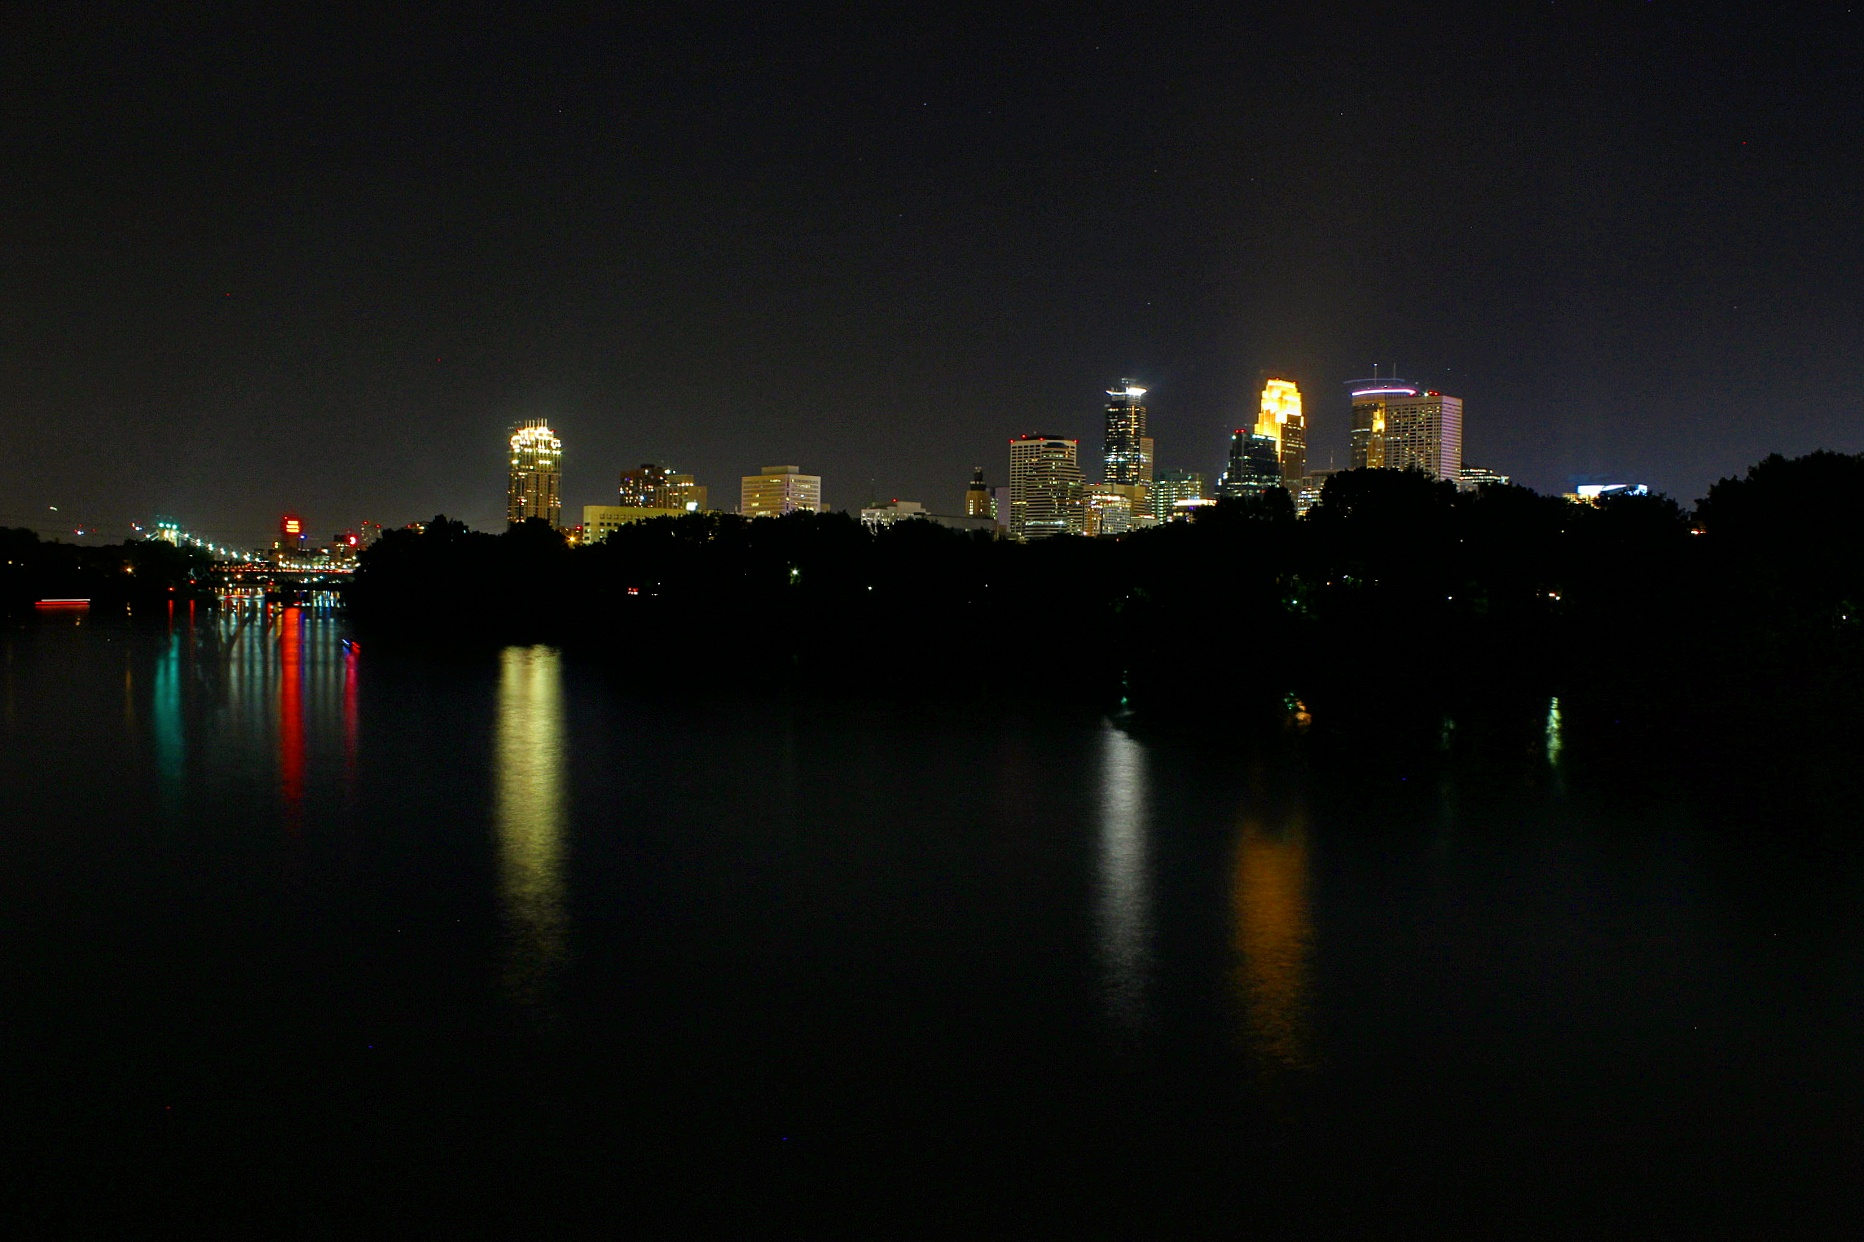 A shot from the Plymouth Ave bridge on the walk home